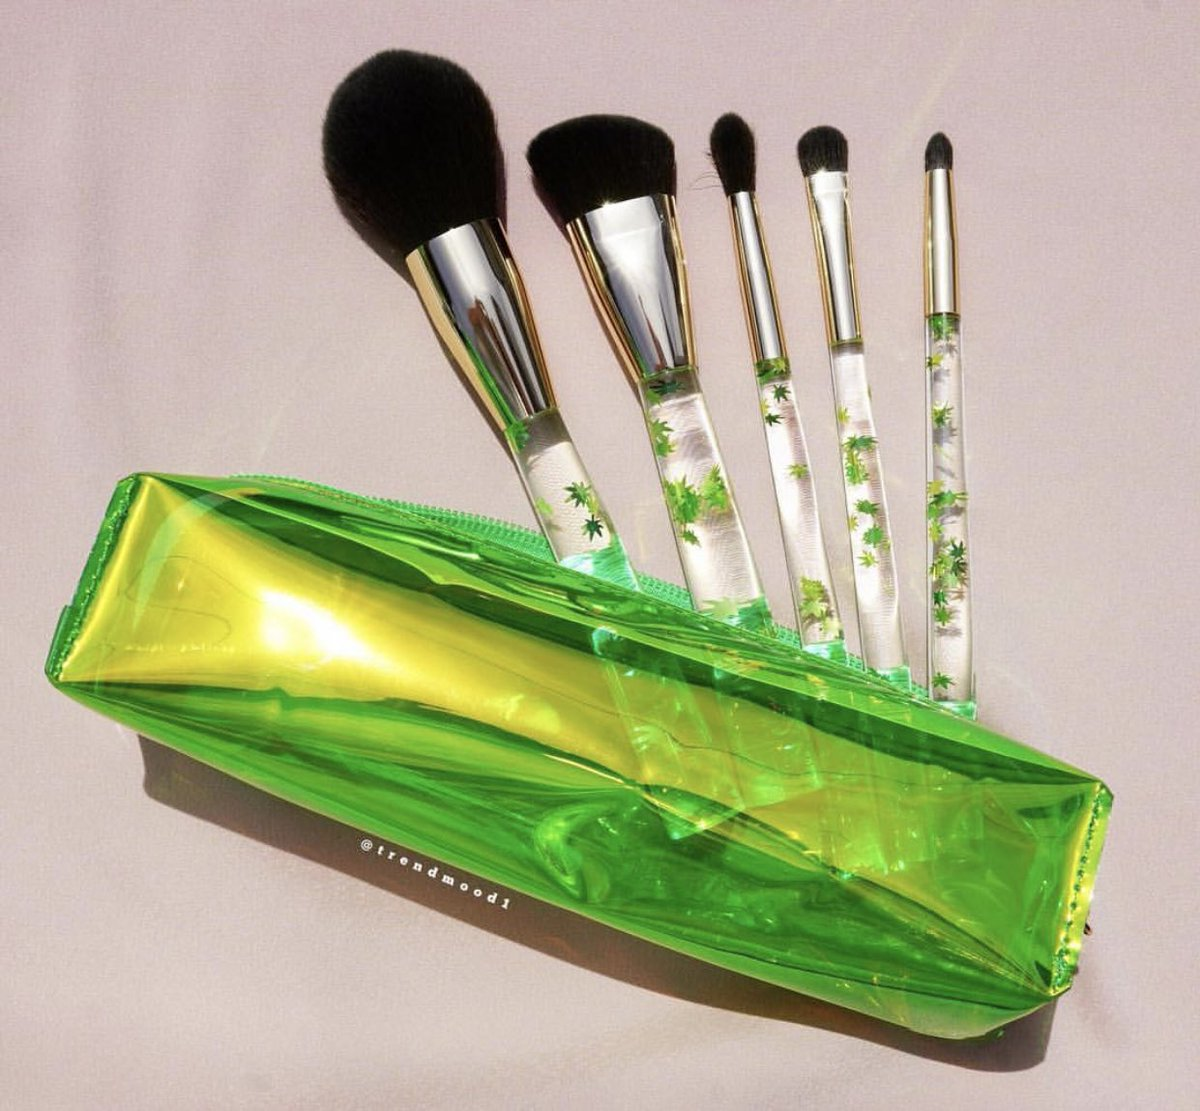 A Closer L👀K 🚨😍🌱💚 NEW The Cannabis #Brush #Collection created by @Beautylish Includes 5 Piece #crueltyfree #vegan brush set: The Powder Brush The Contour Brush The Blender Brush The Packer Brush The Smudger Brush + Zip Pouch #LimitedEdition $42 Online ➡️ TOMORROW @ 10am PST